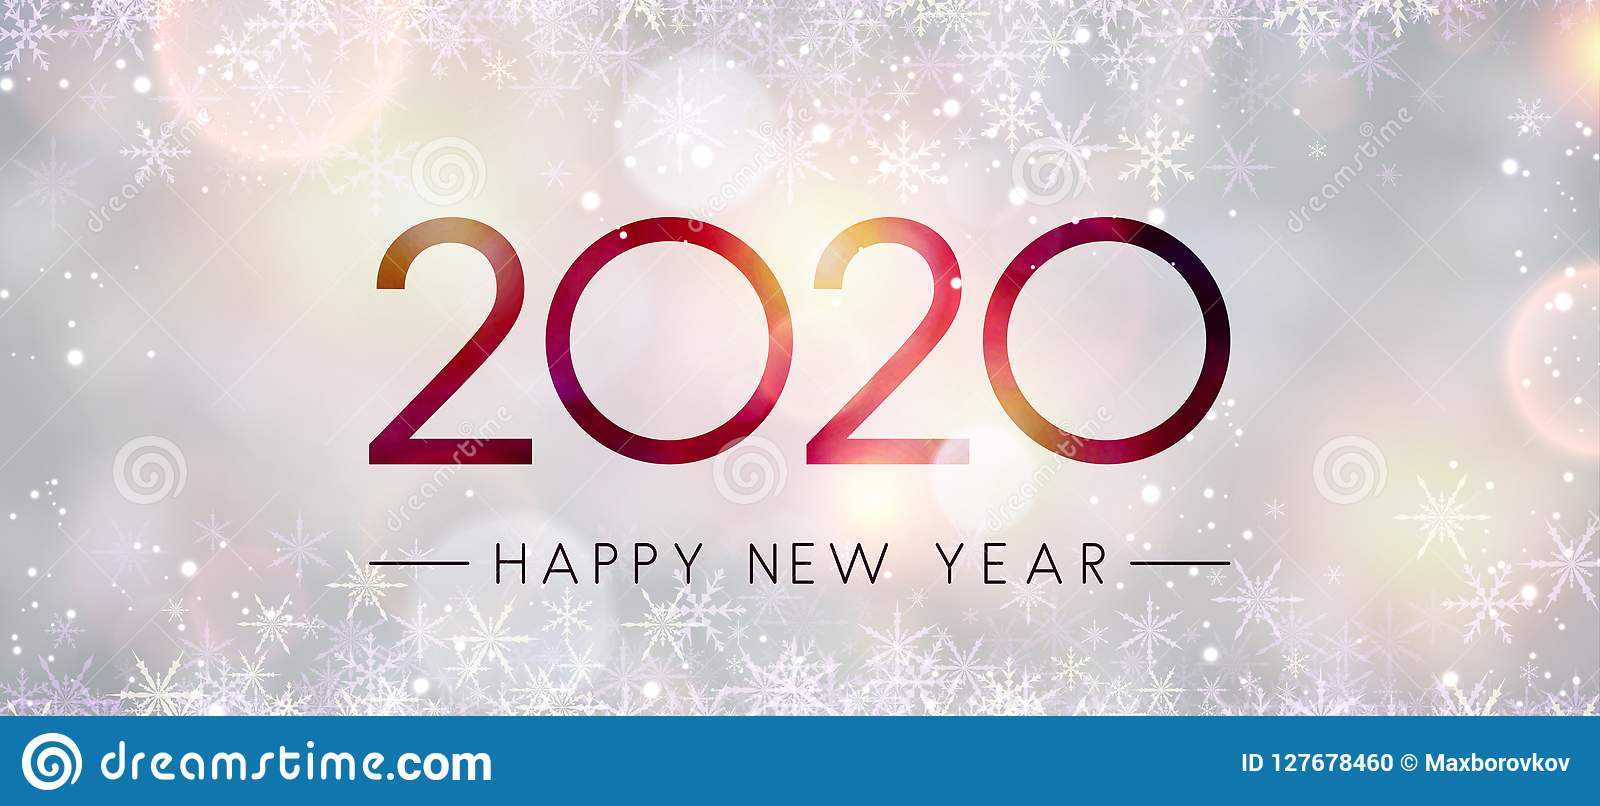 blurred shiny happy new year 2020 banner with snowflakes